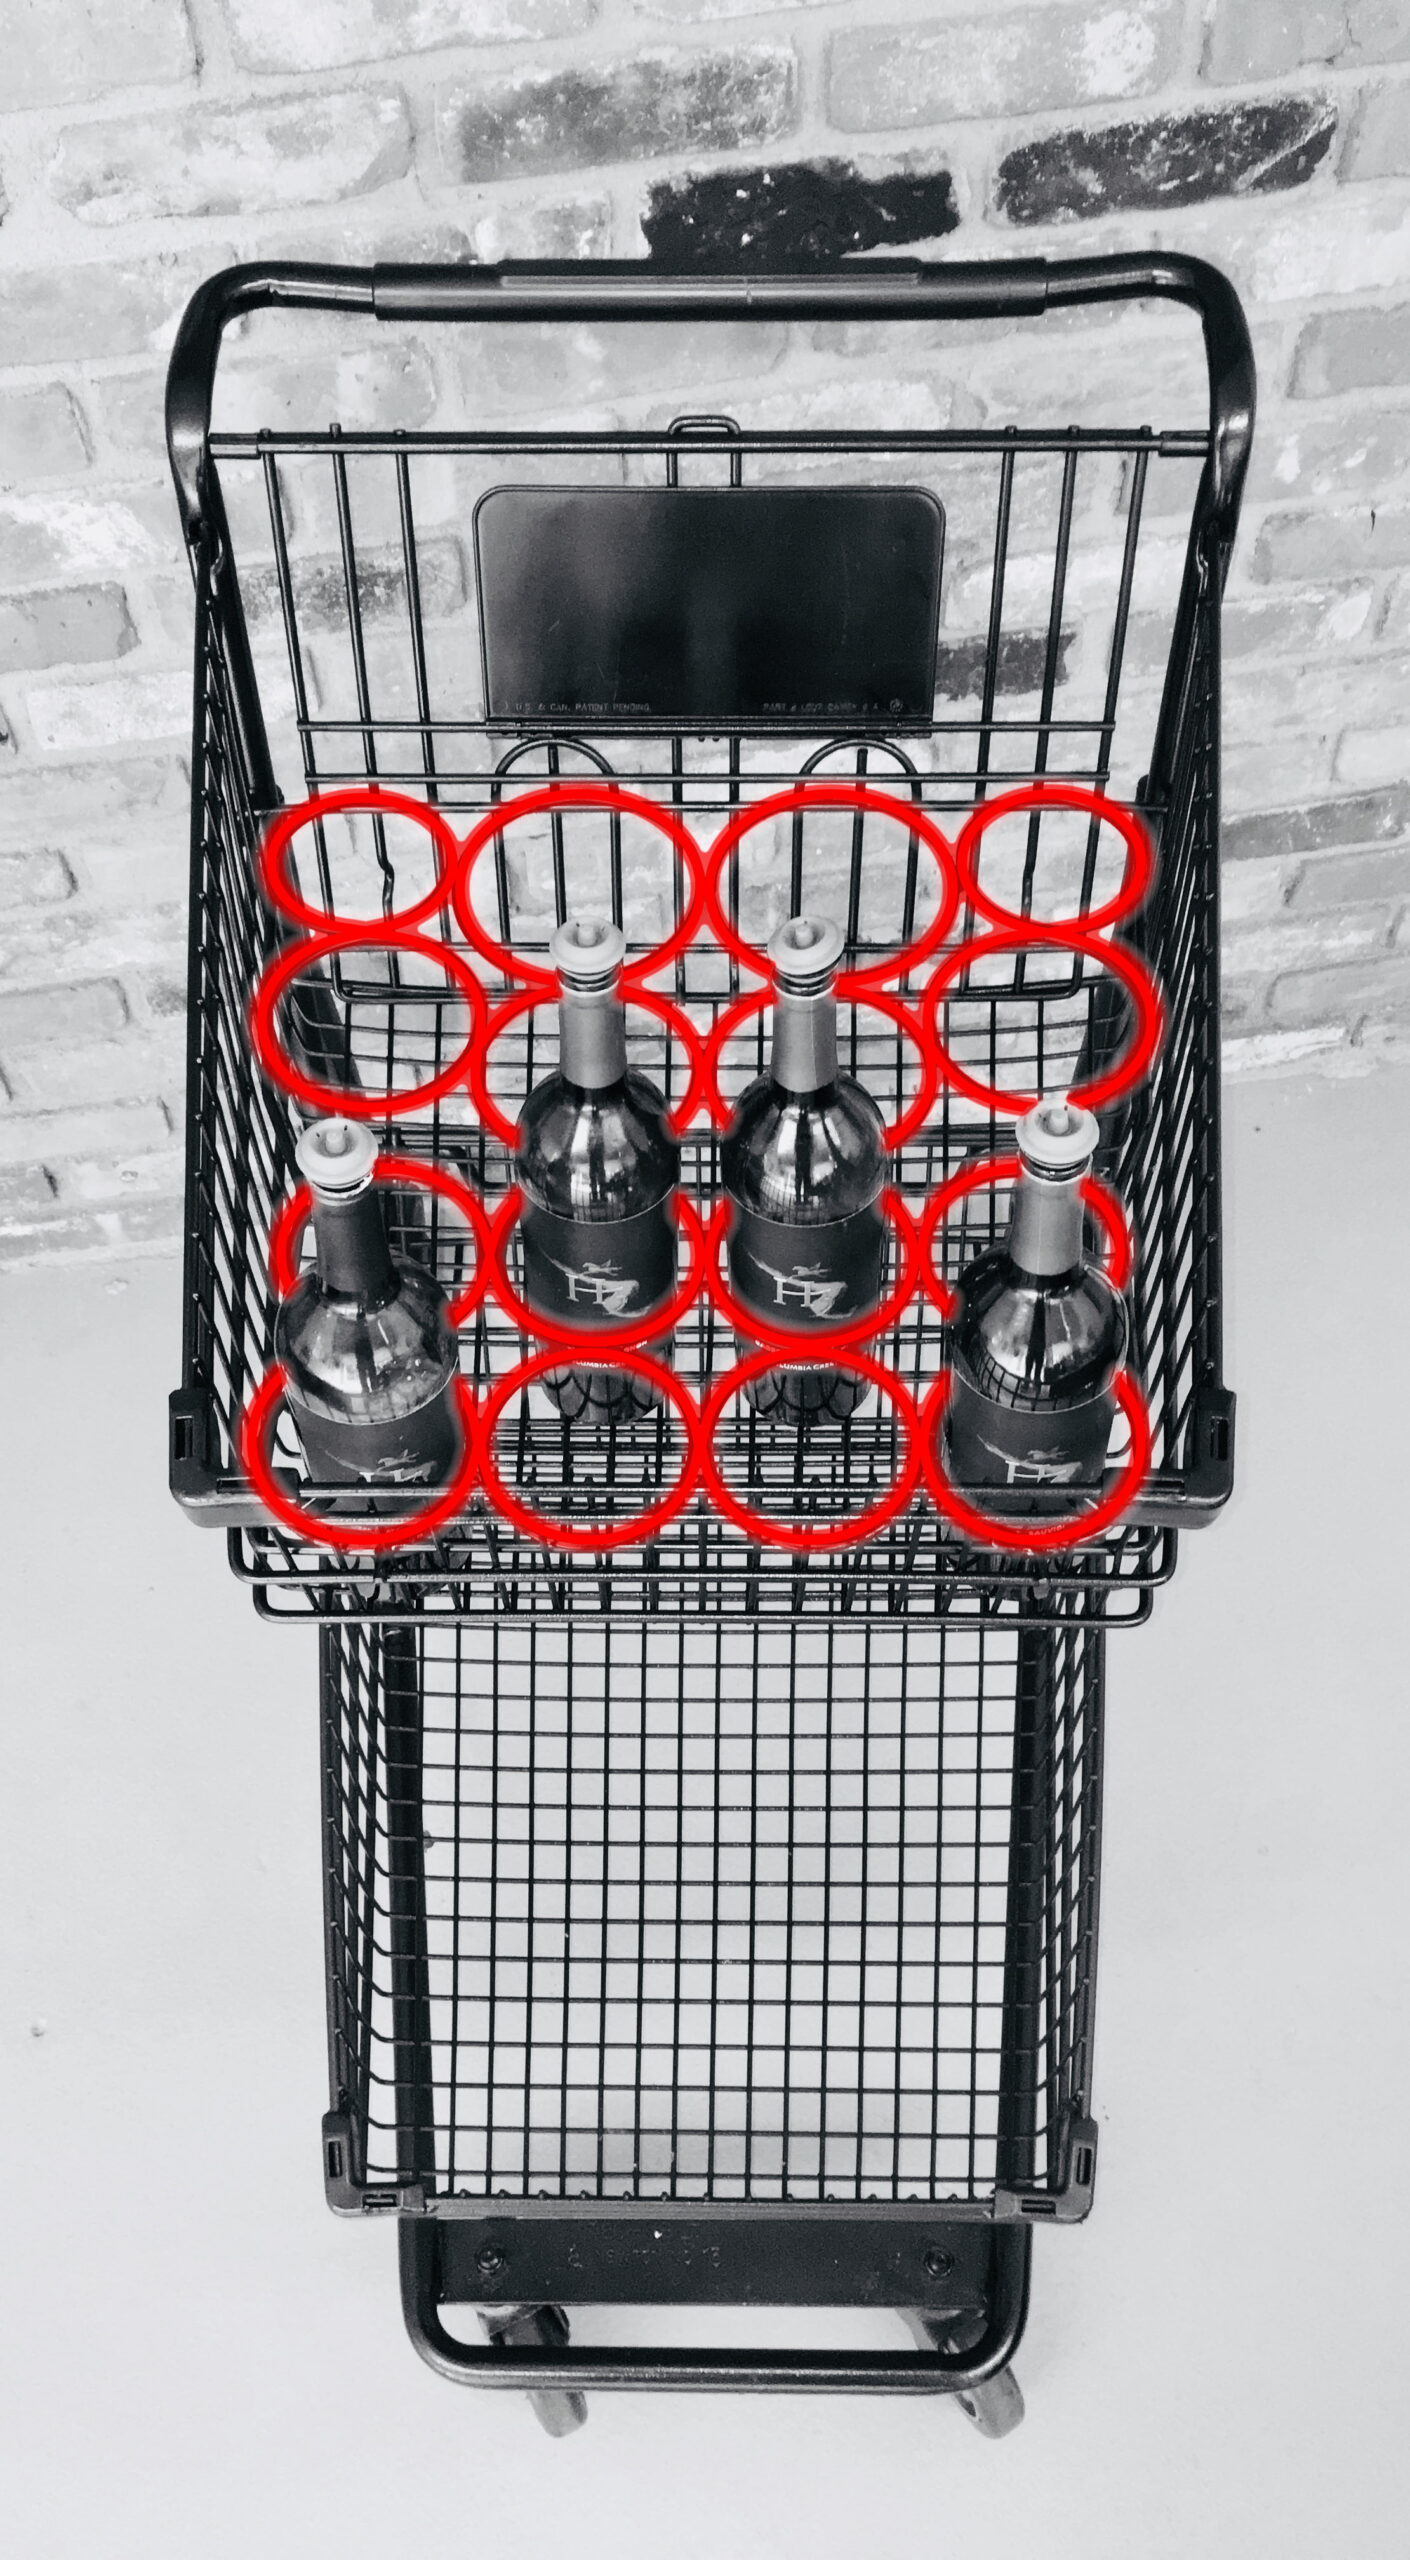 It's the safety rings that make all the difference!